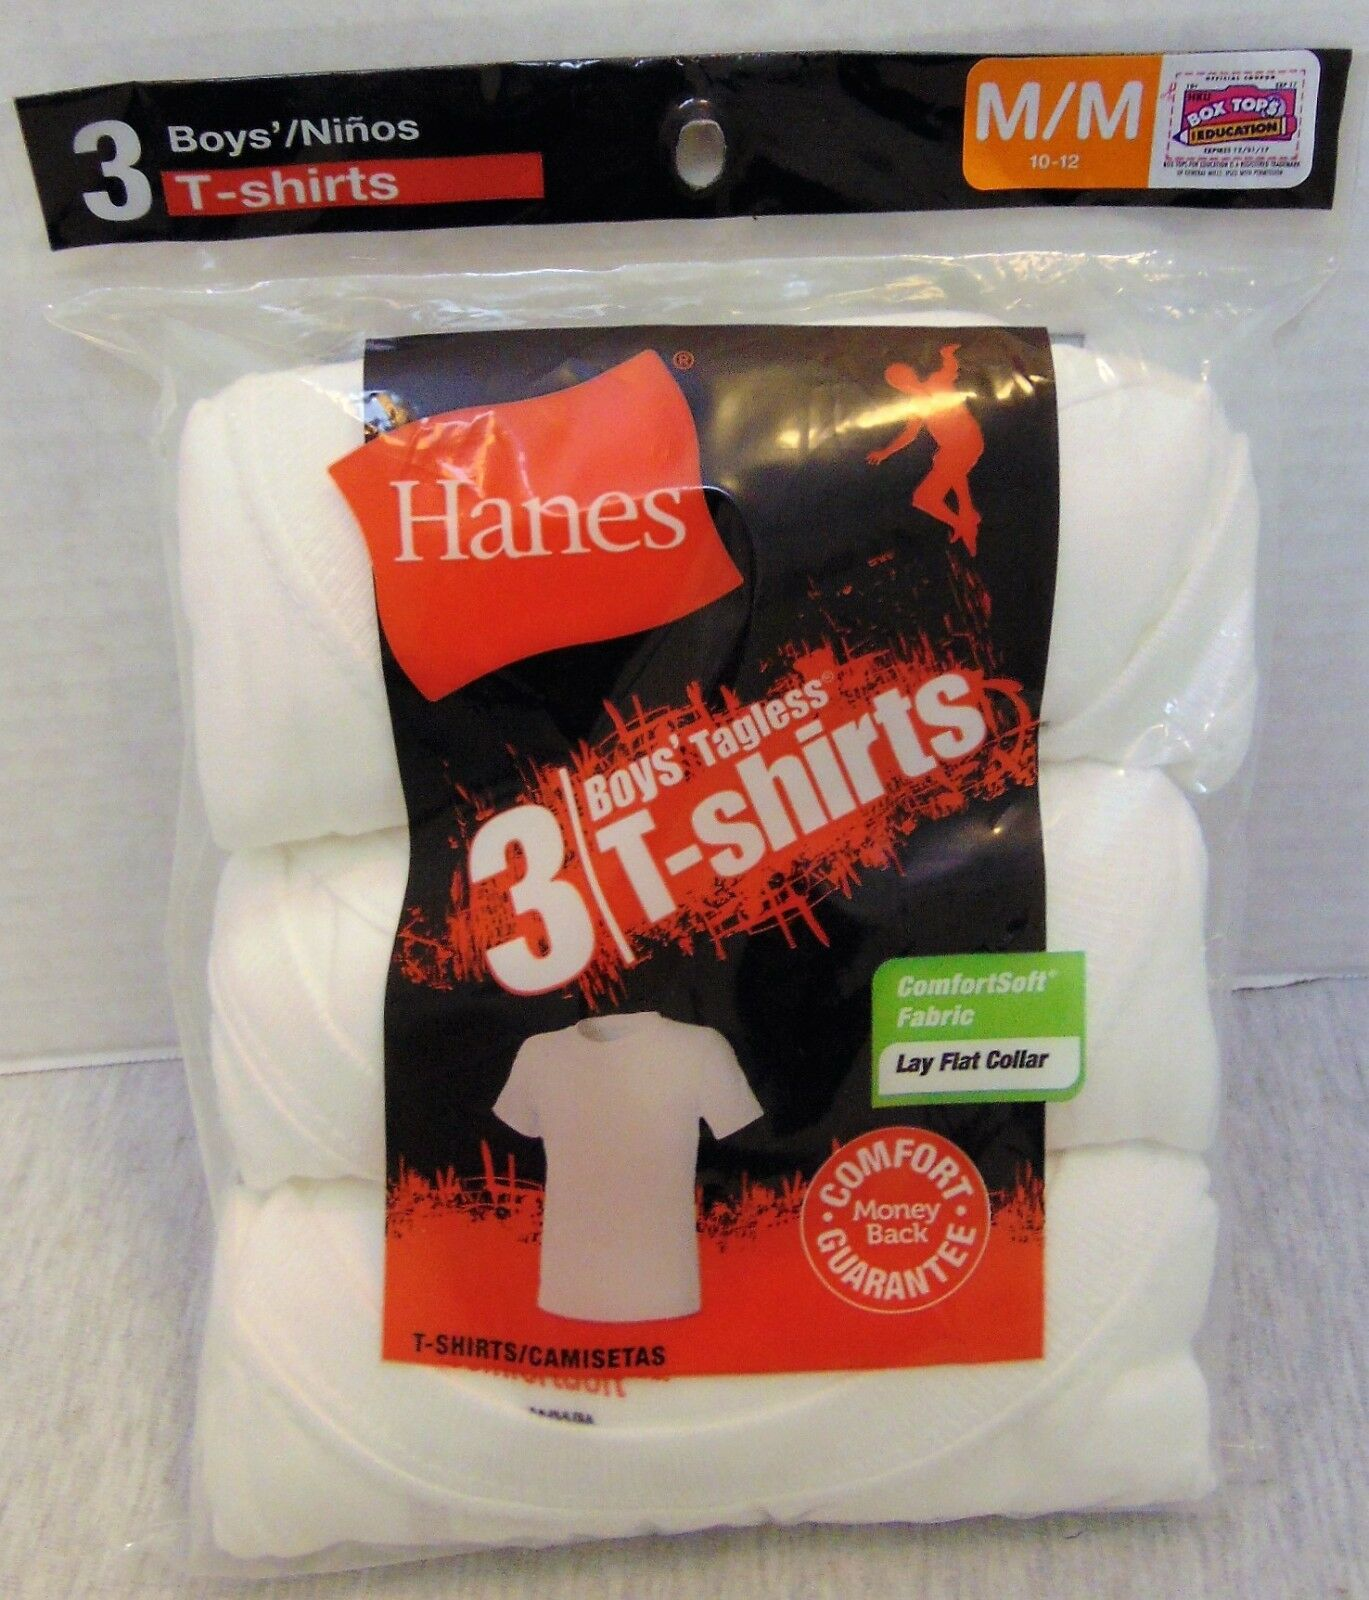 05d4601d Boy's Youth White 100 Cotton 3pk Short Sleeve Tagless T-shirt M 10-12 Hanes  for sale online | eBay